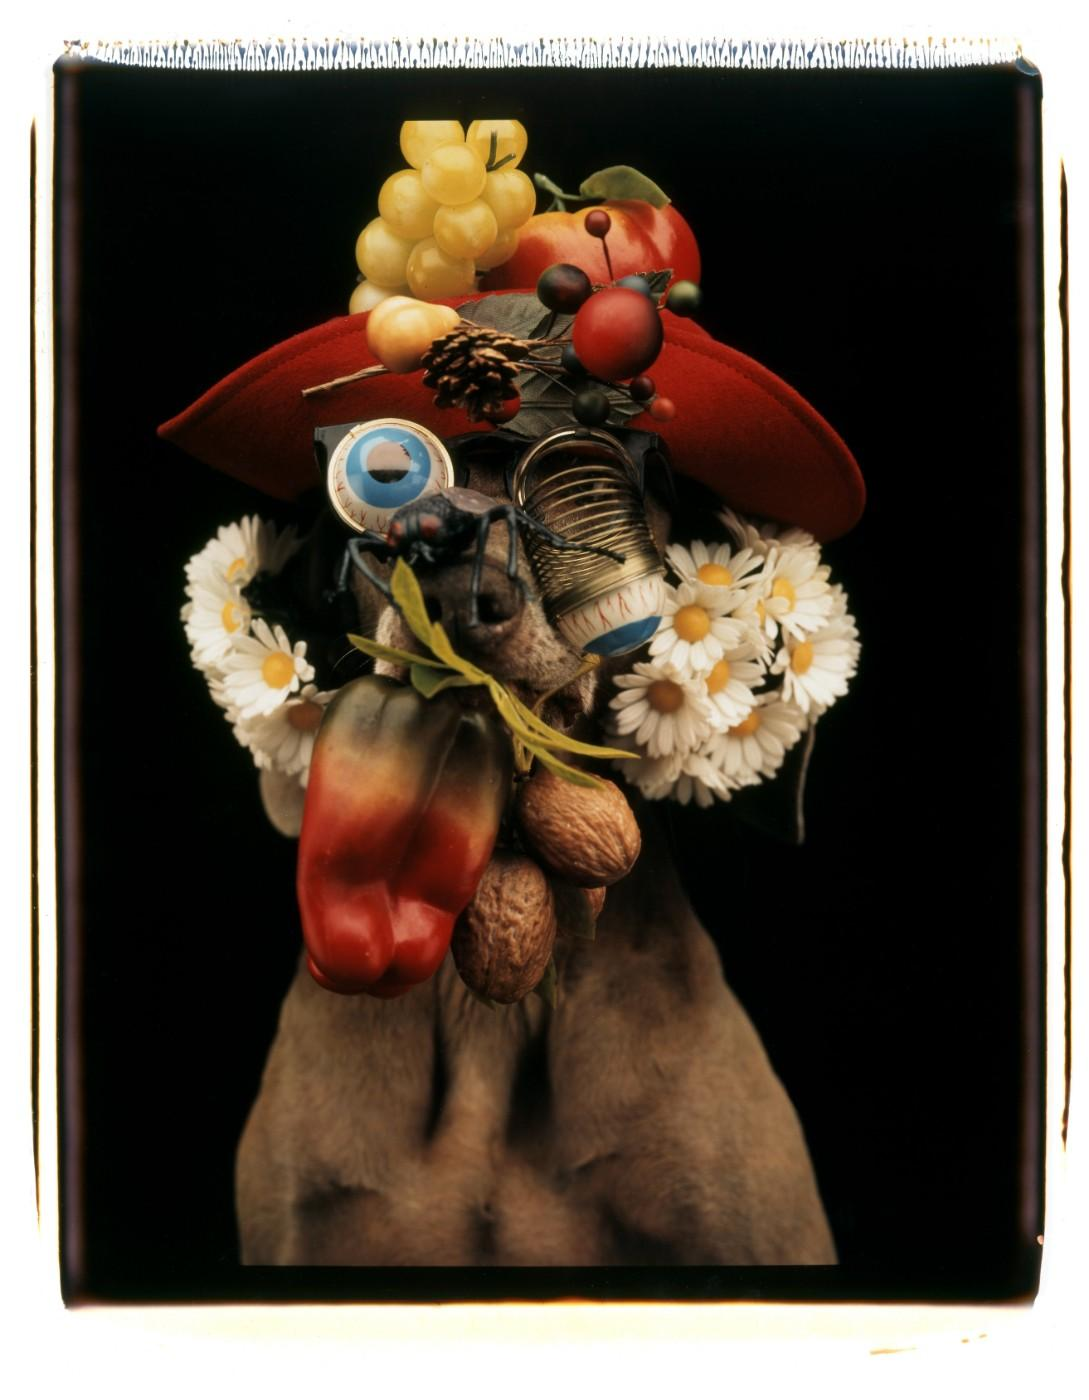 William Wegman, Daisy Nut Ball, 1994. Color Polaroid, 24 x 20 in.